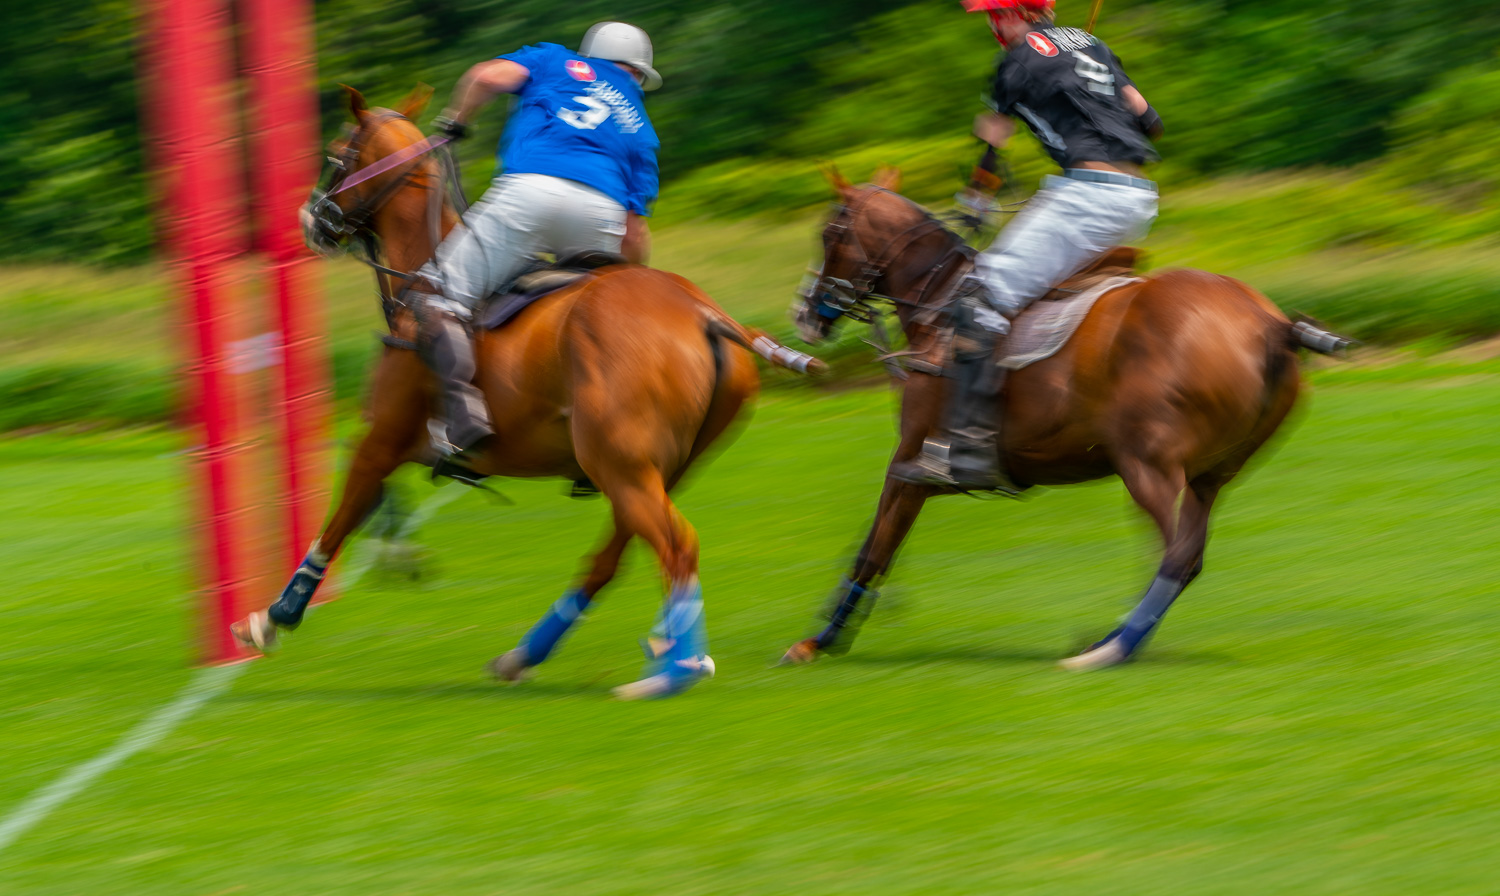 Defending the goal at the mashomack polo club in pine plains, ny.  Polo is a contact sport..jpg